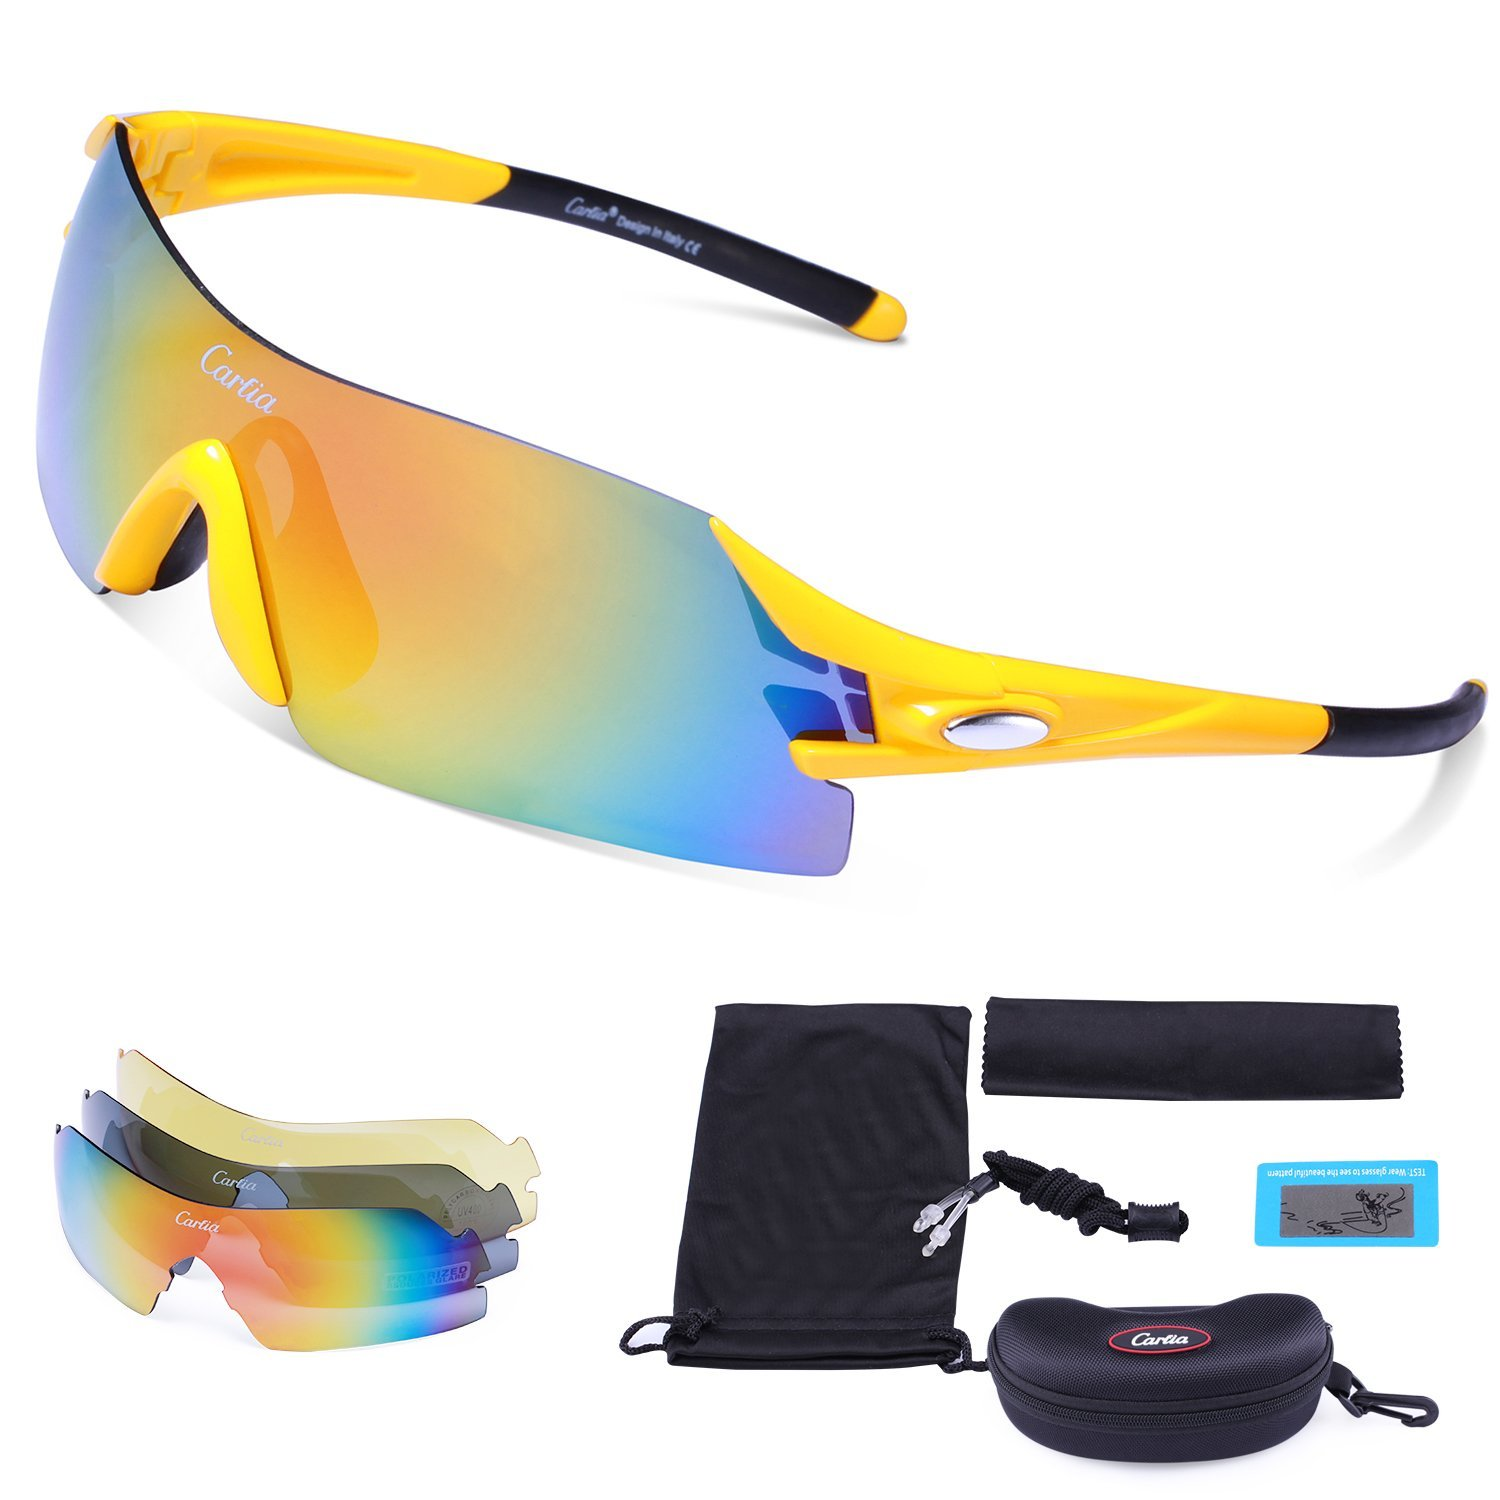 b34986aea4 Get Quotations · Sports Sunglasses - Carfia Mens Womens Cycling Sunglasses  UV400 Protection Polarized Sunglasses with 3 Interchangeable Lenses